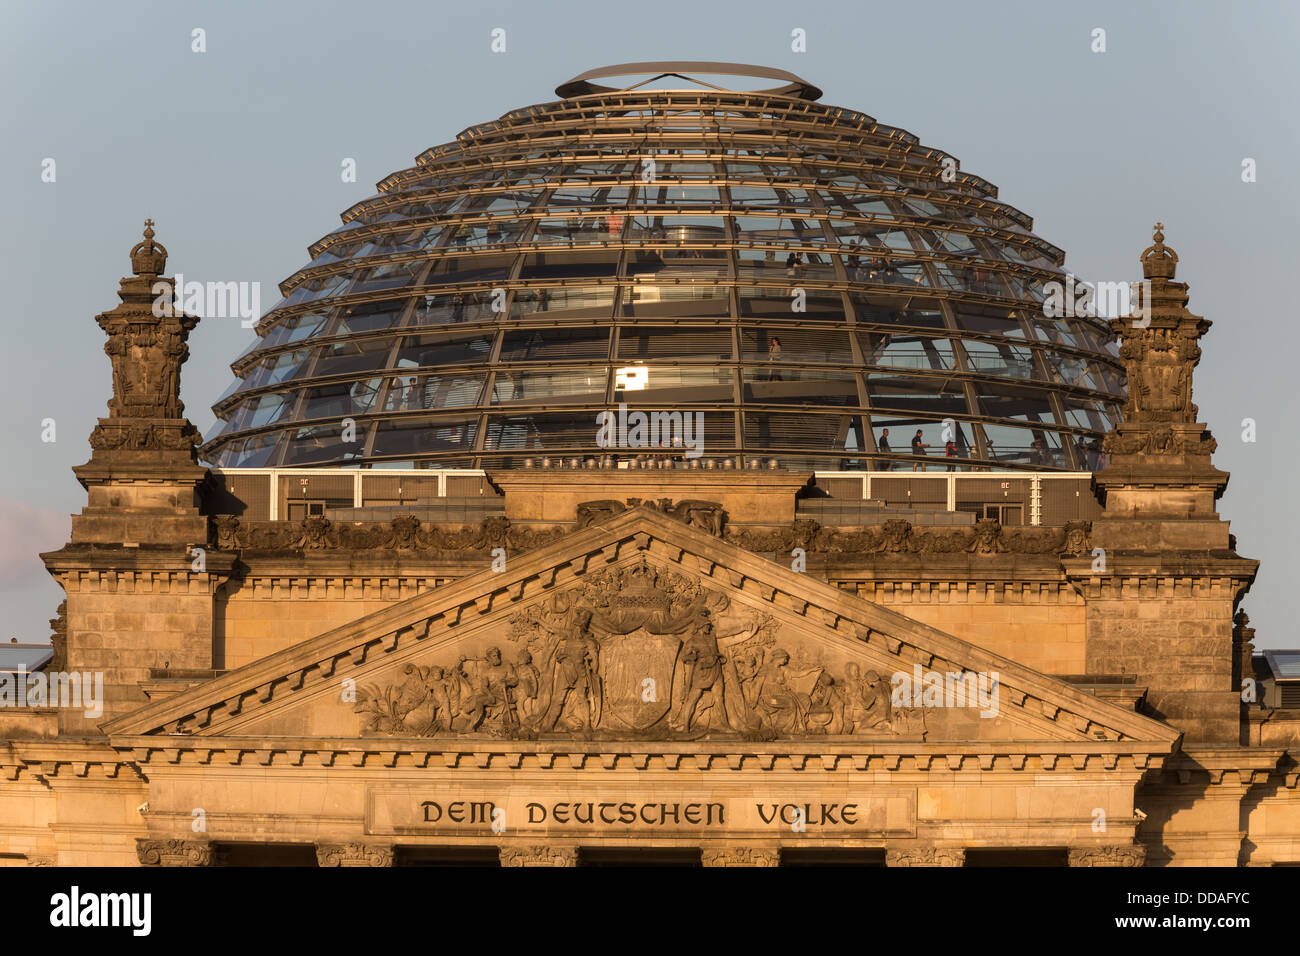 pediment and dome of the Reichstag building, Berlin, Germany - Stock Image